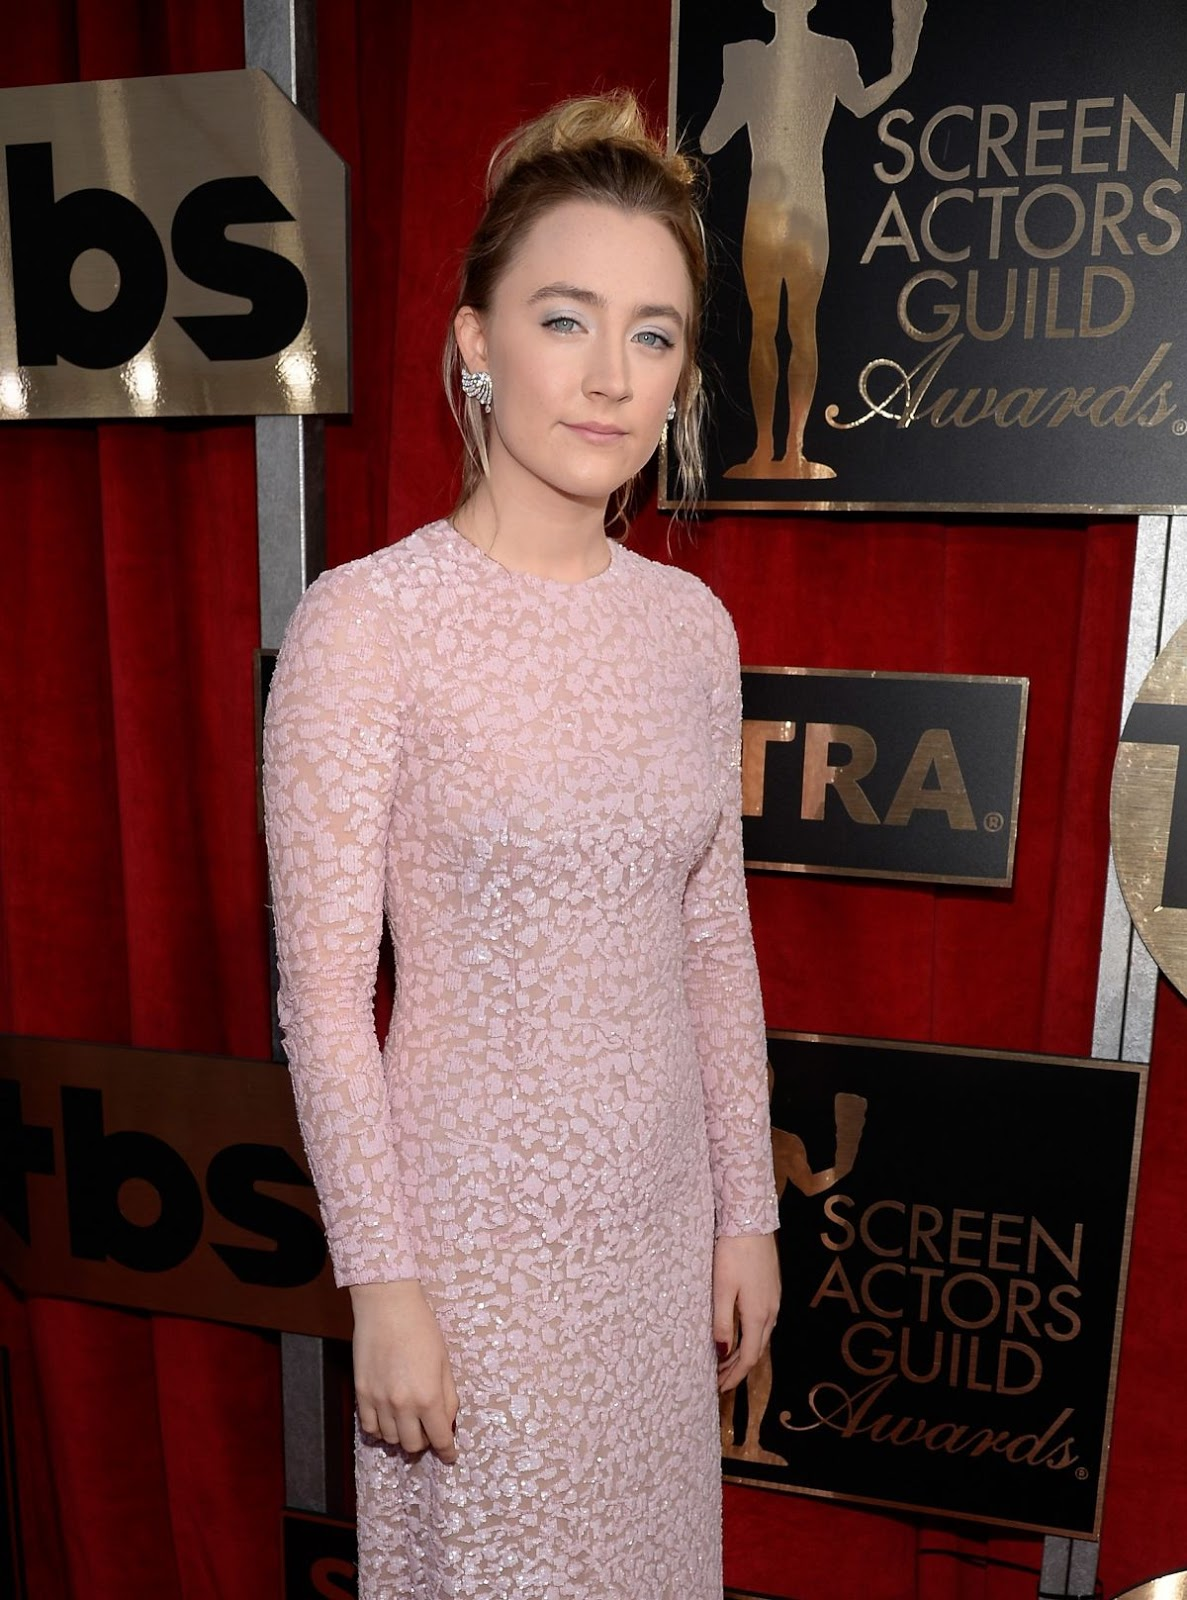 SAG Awards 2016 - Saoirse Ronan in Pink at Screen actors Guild Awards in Los Angeles